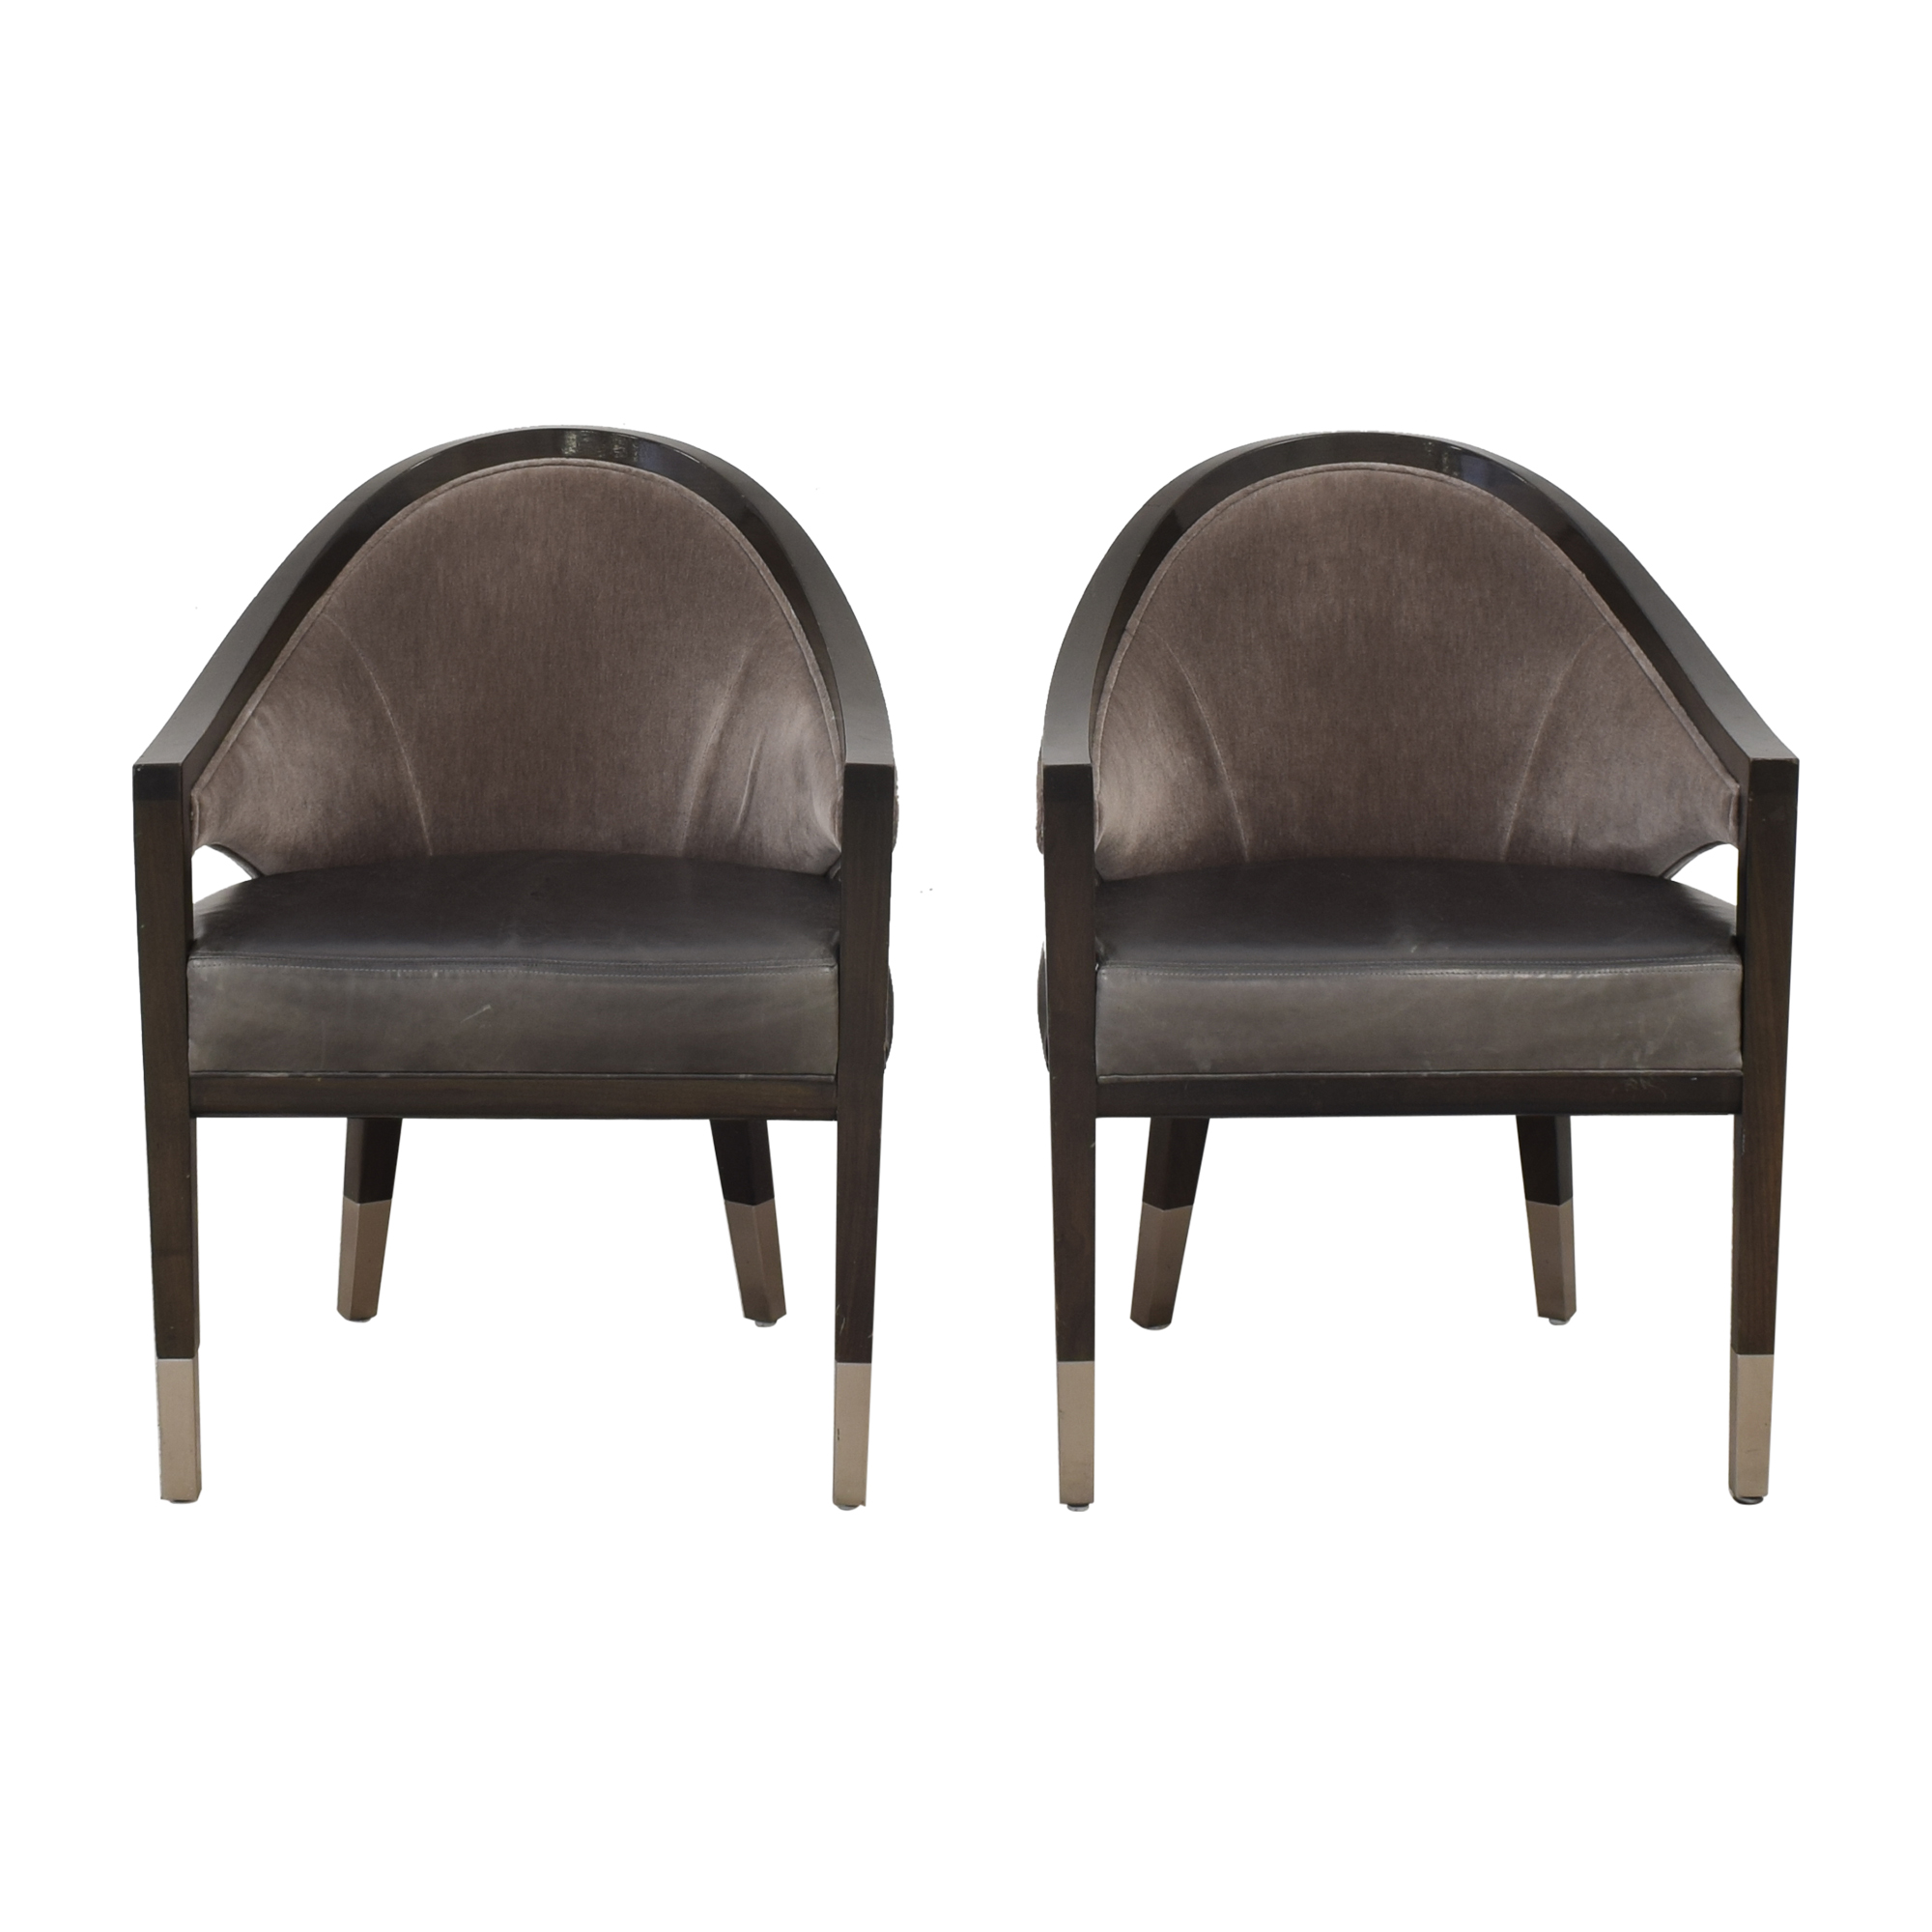 Allied Form Works Allied Works Eleven Madison Park Dining Room Chairs ma